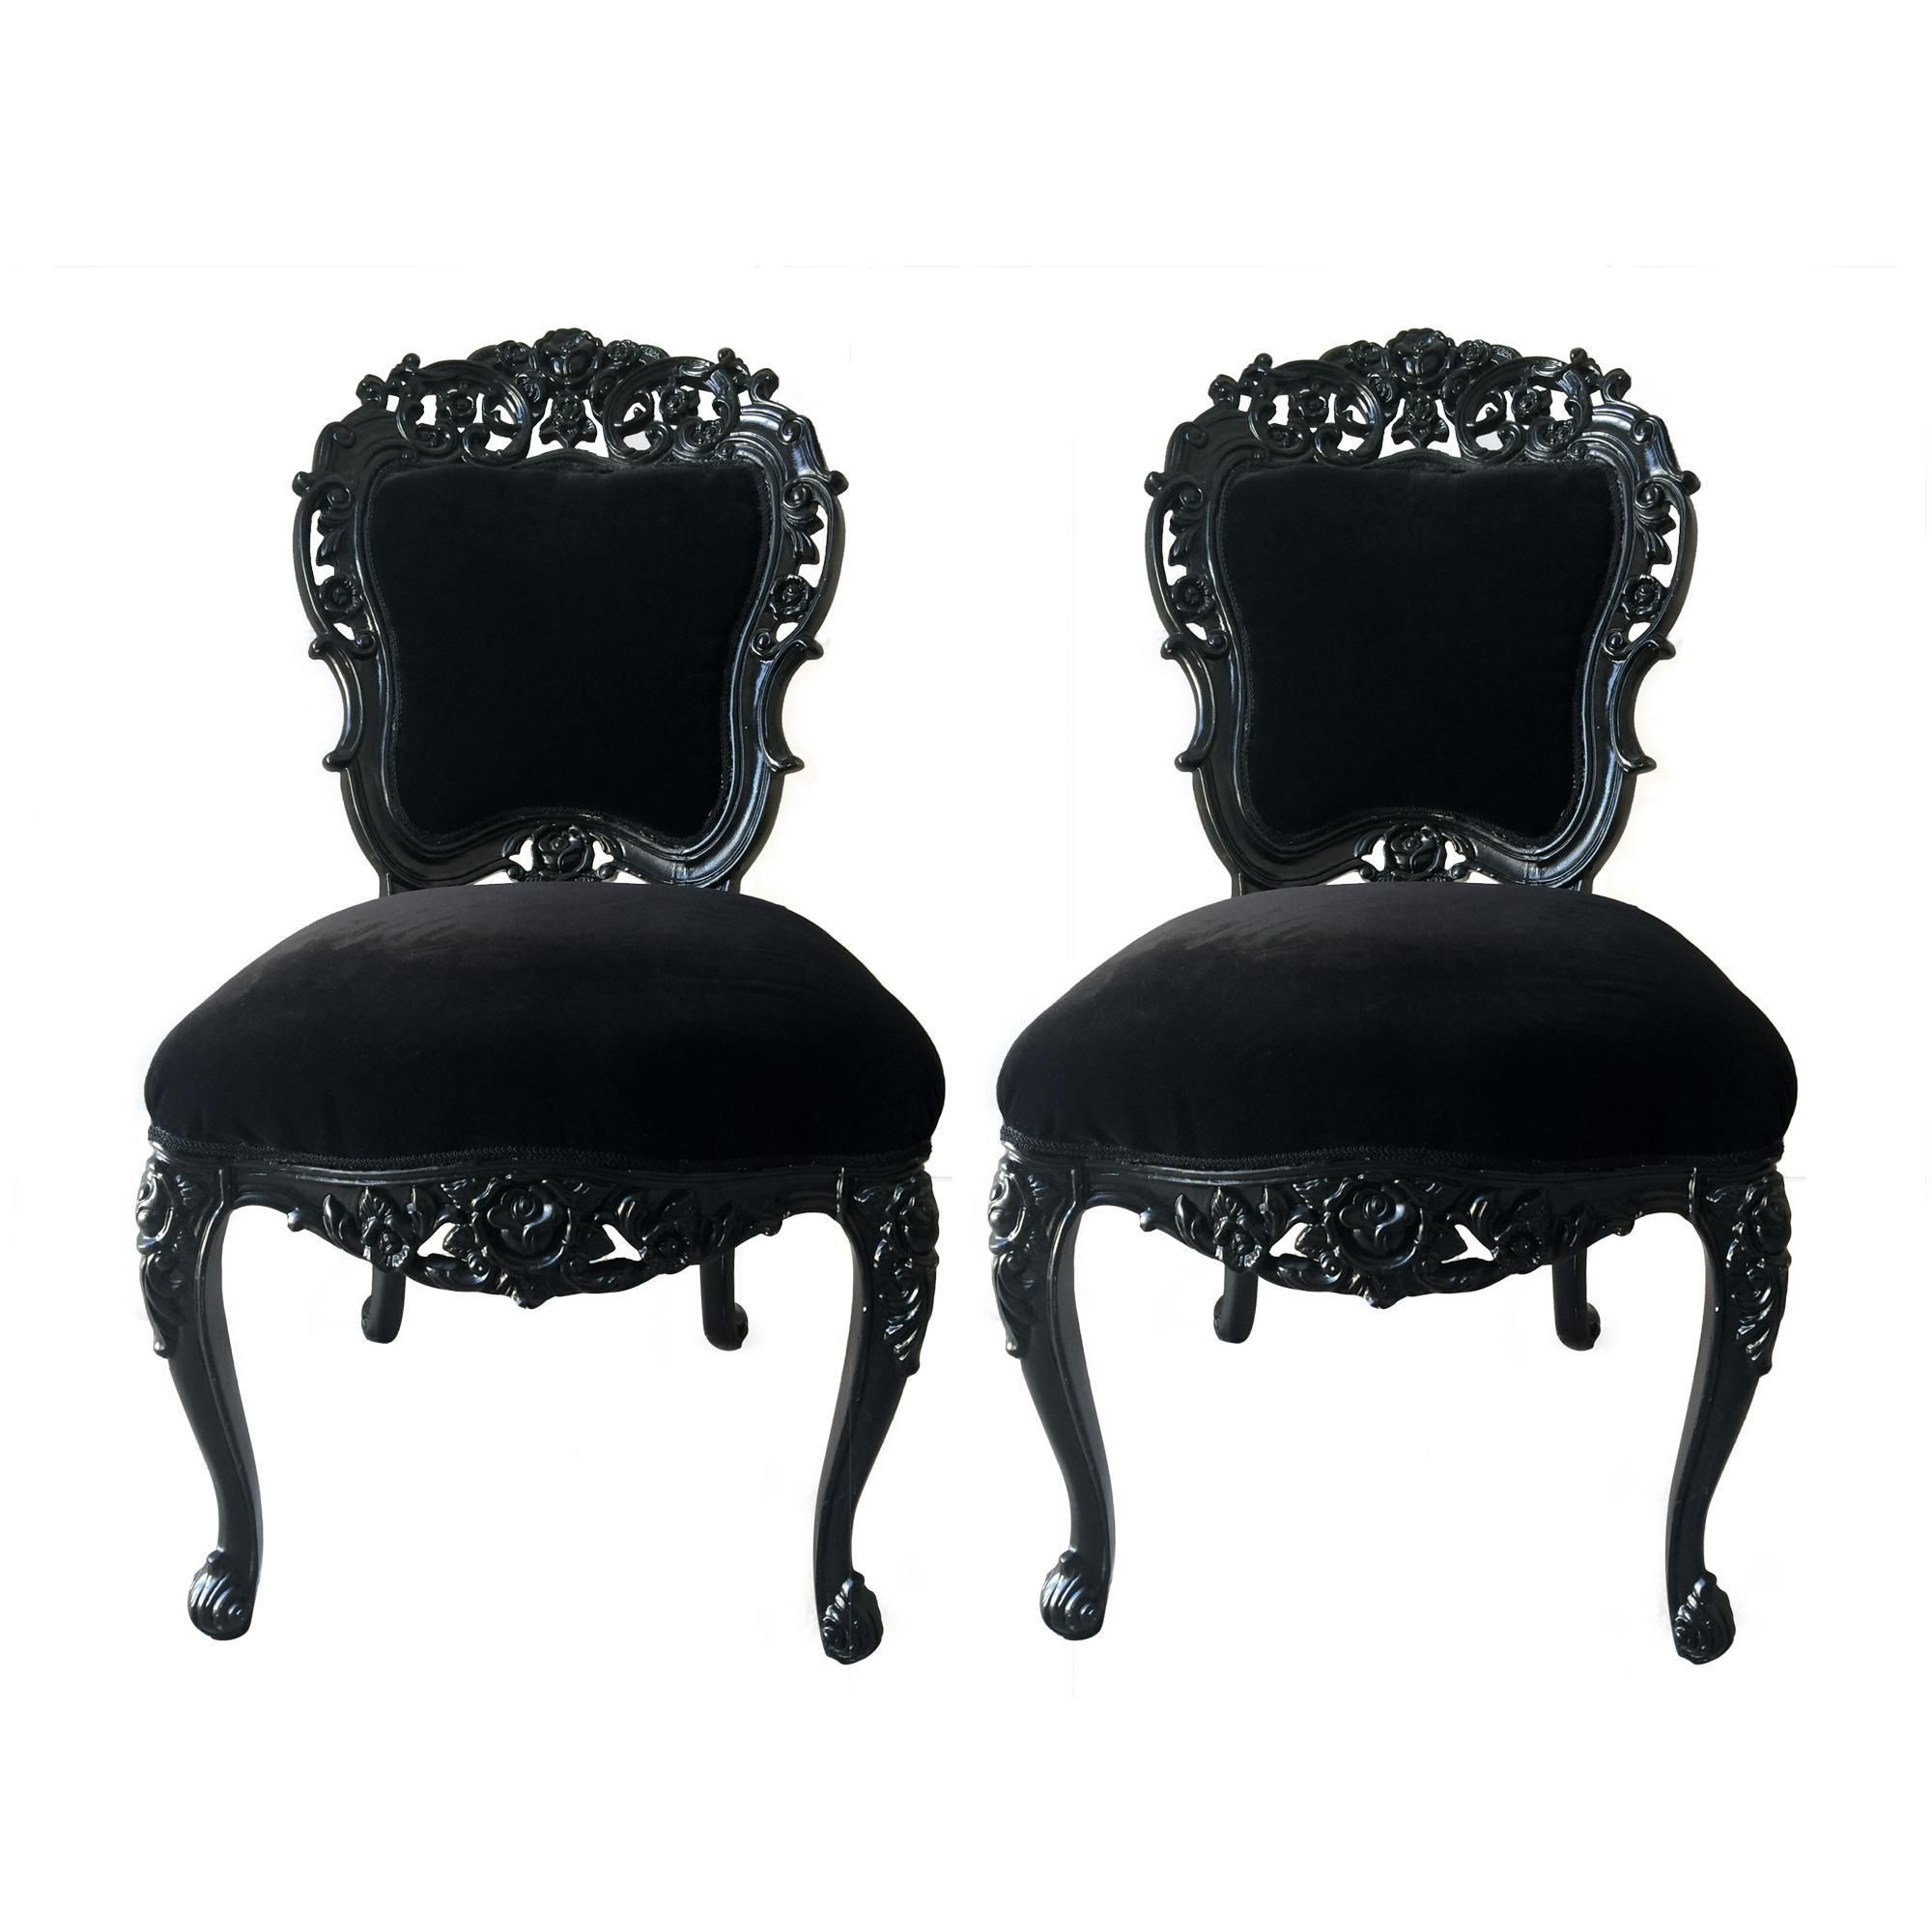 Vintage French Baroque Carved Glossy Black Chairs on Chairish.com